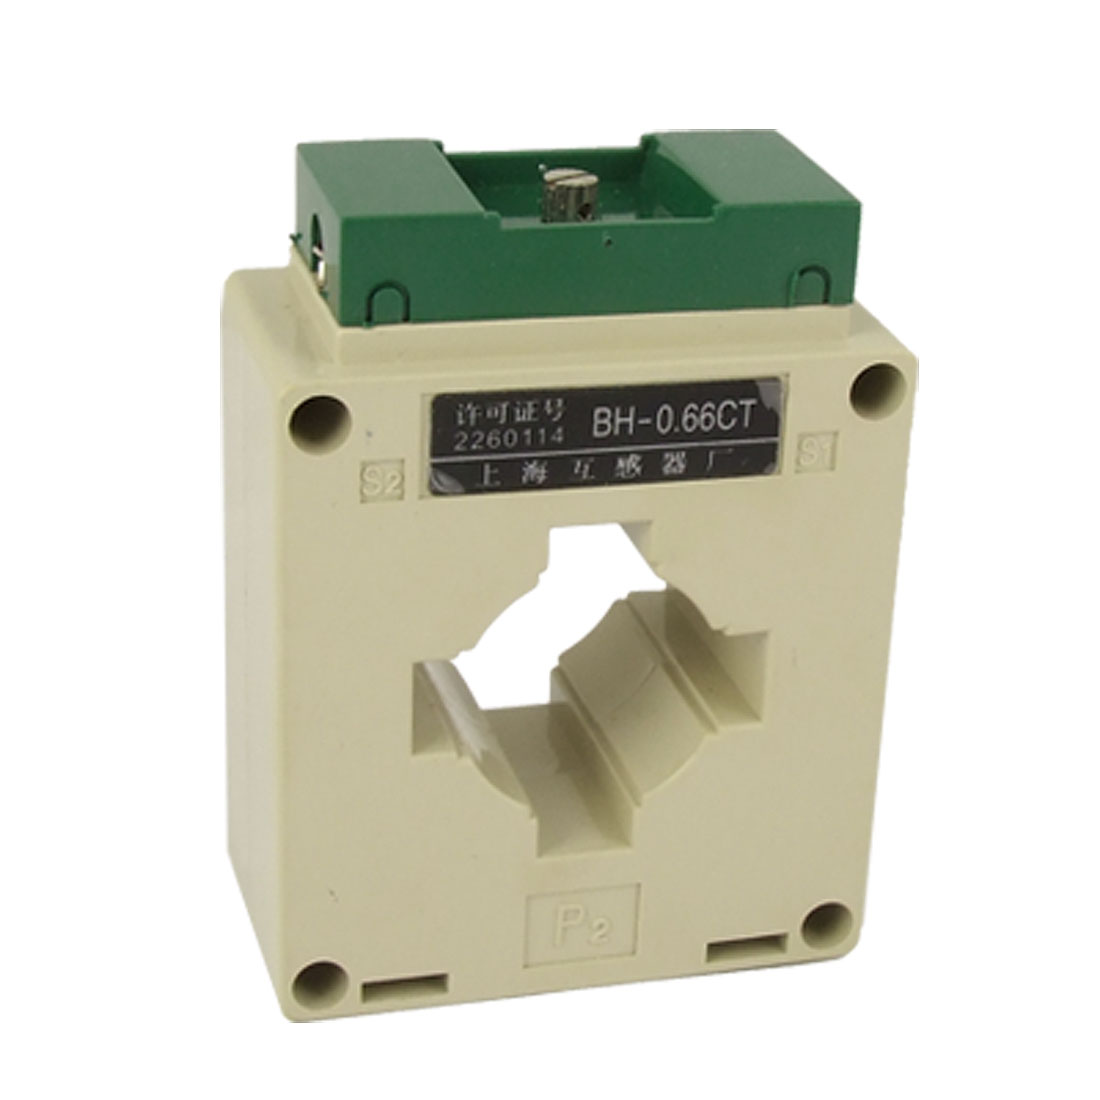 Accuracy Class 0.5 400/5 Current Transformer BH-0.66CT